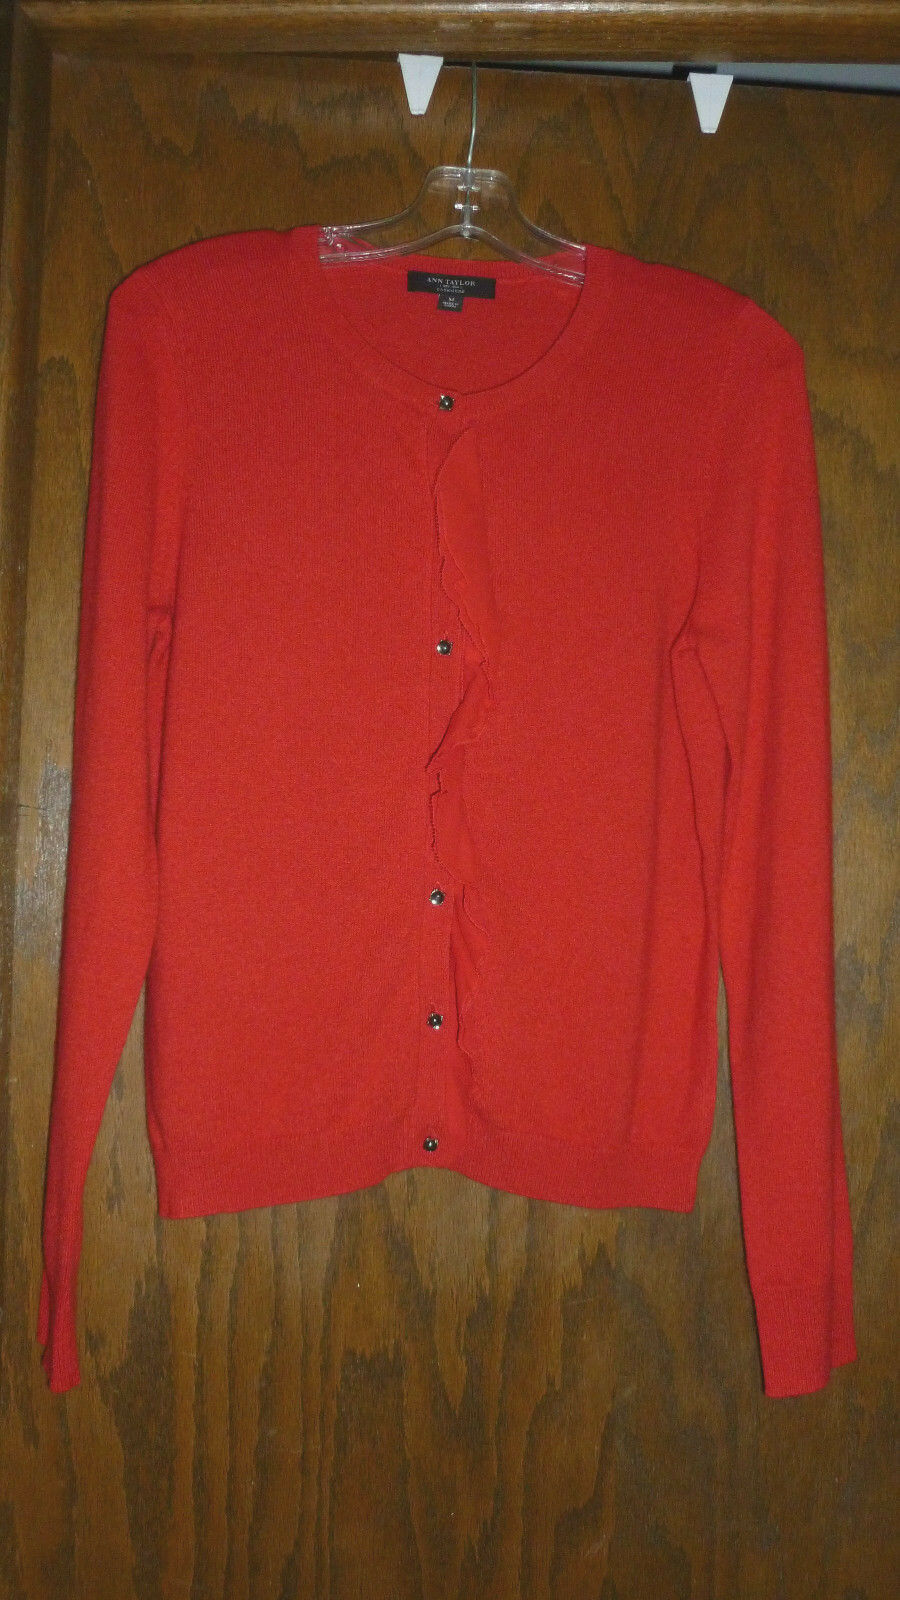 ANN TAYLOR 100% CASHMERE RUFFLE TRIM BUTTON FRONT SWEATER RED NWOT SZ M